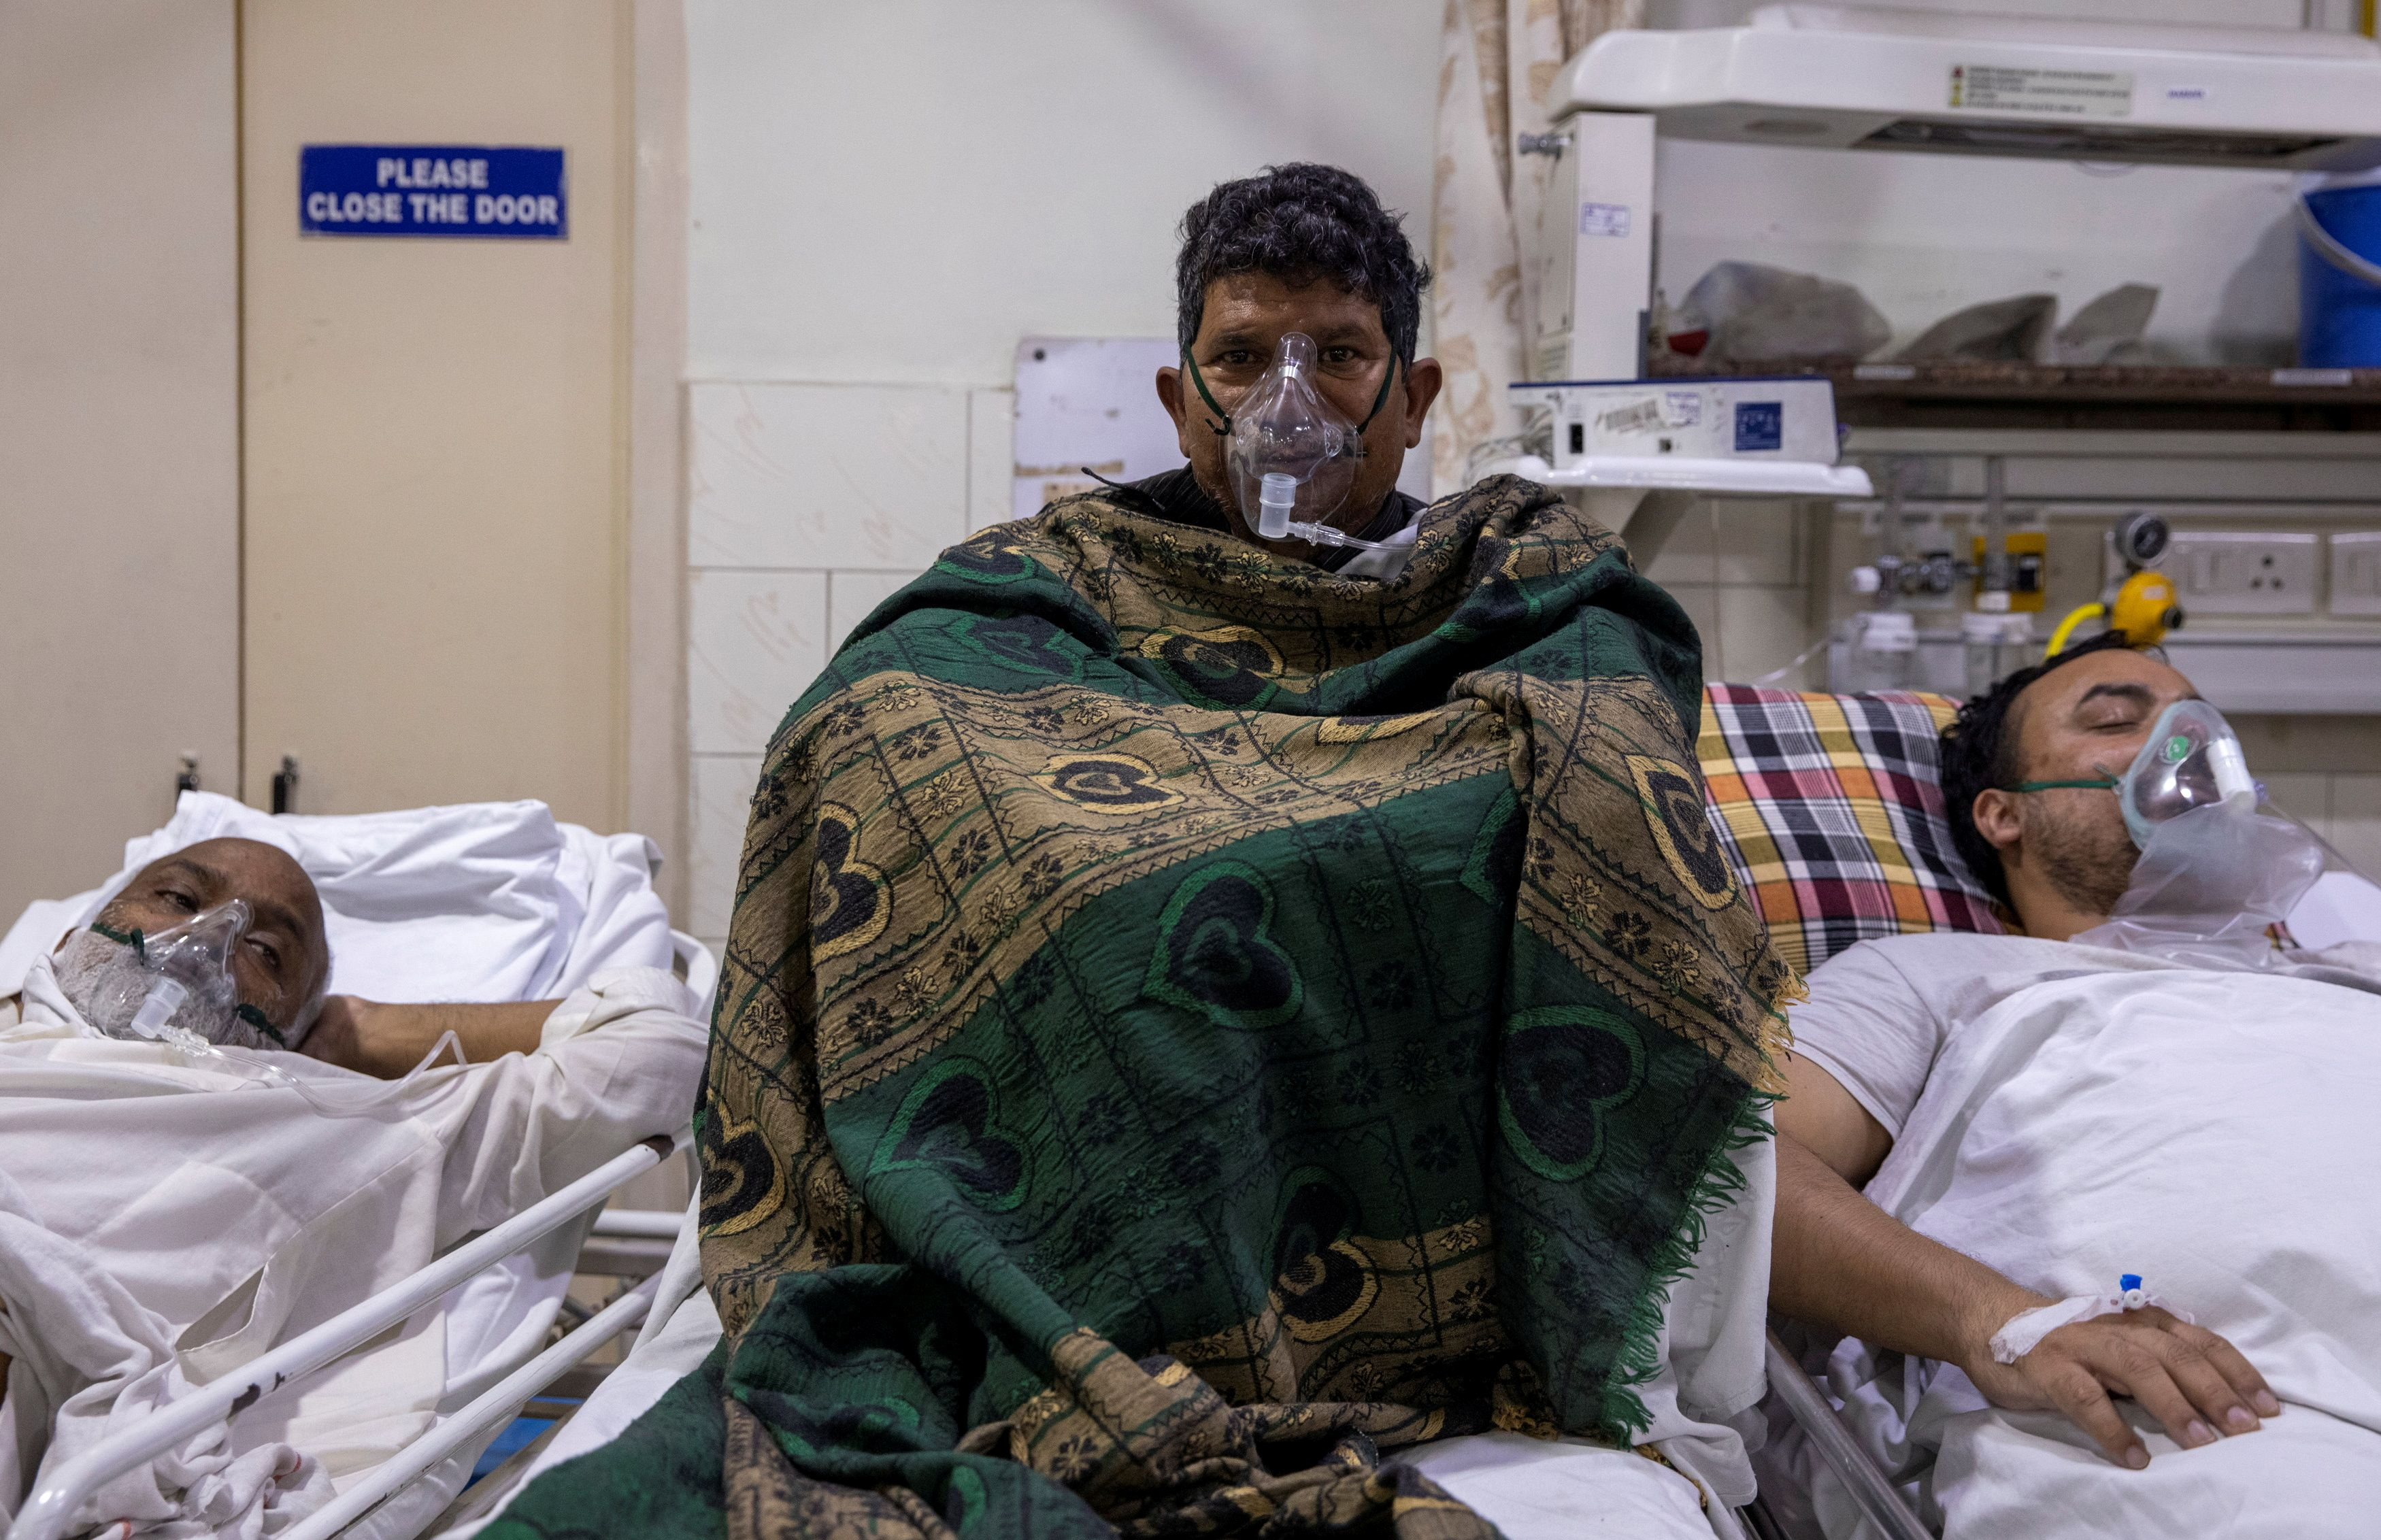 Patients suffering from the coronavirus disease (COVID-19) receive treatment inside the emergency ward at Holy Family hospital in New Delhi, India, April 29, 2021. REUTERS/Danish Siddiqui